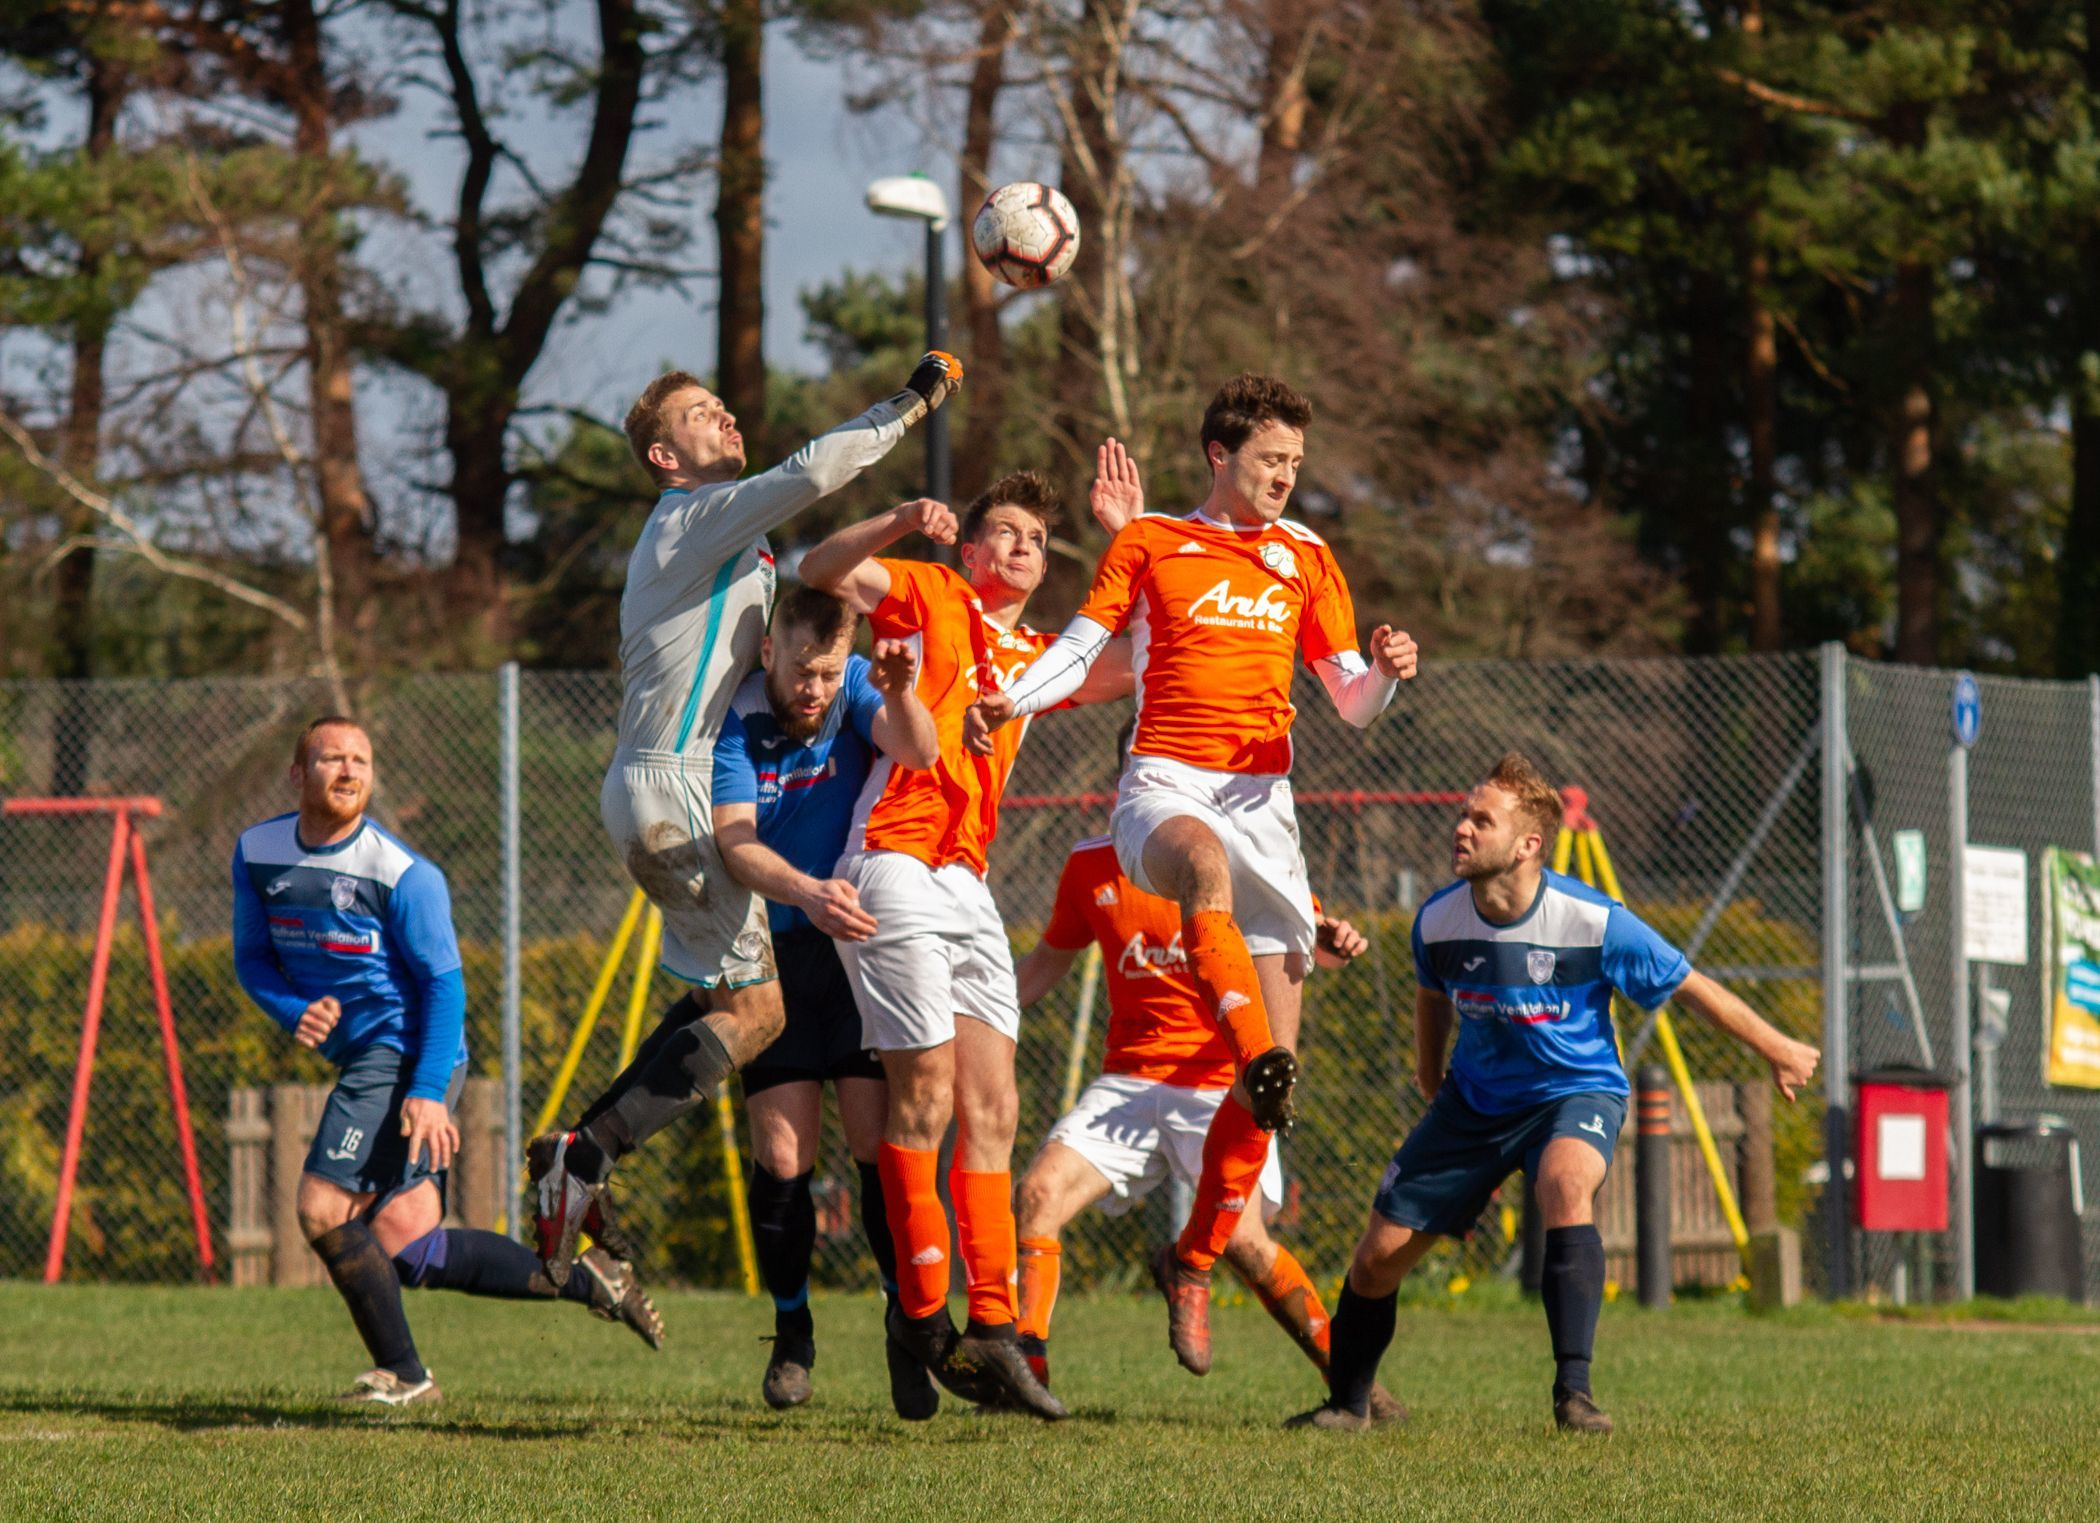 BEATEN TO THE PUNCH: Action from East Christchurch SSC's Robbins Cup semi-final win over Alderney Manor (Picture: BHFL)